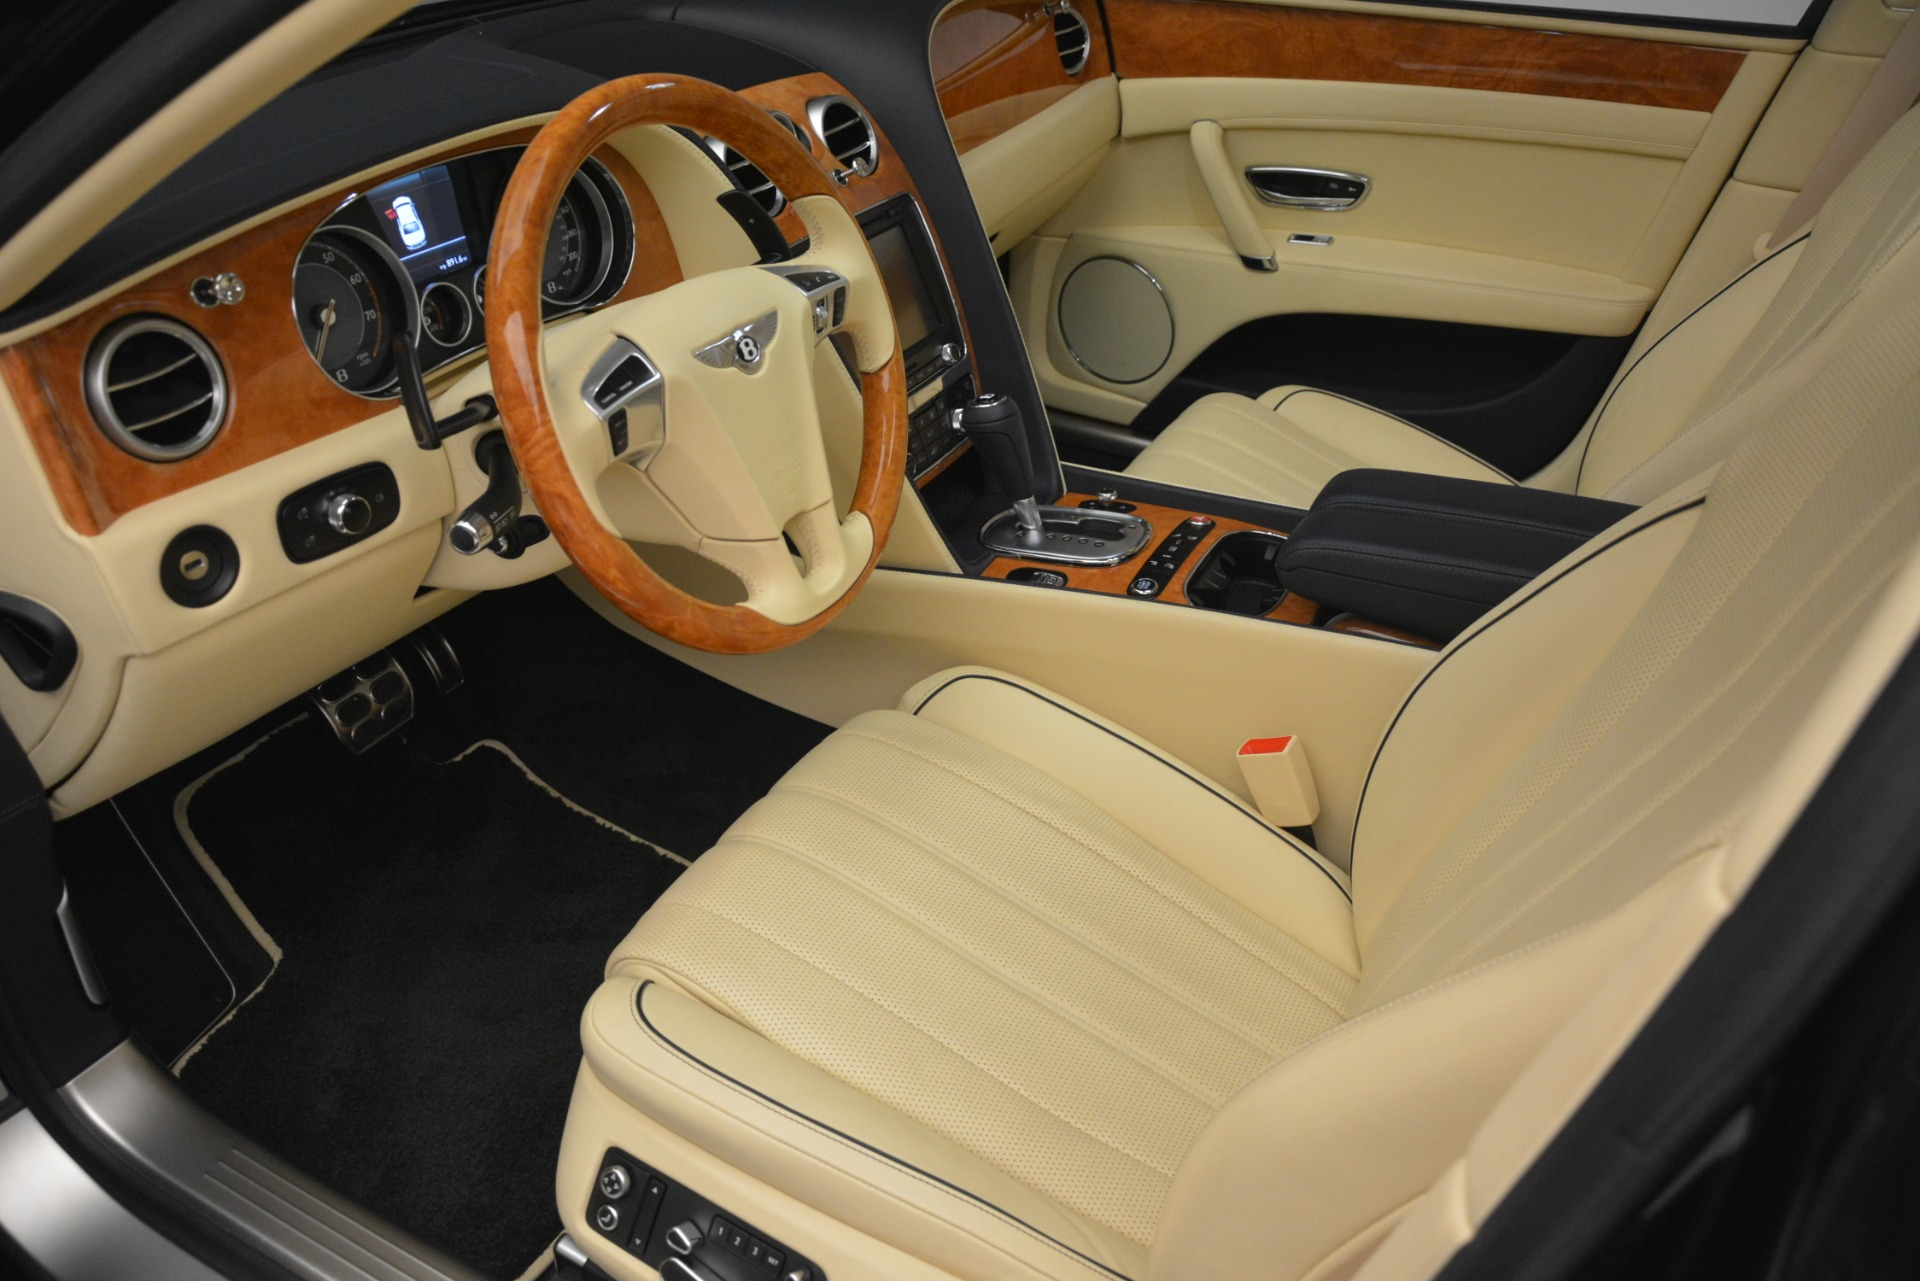 Used 2015 Bentley Flying Spur V8 For Sale In Westport, CT 2997_p16